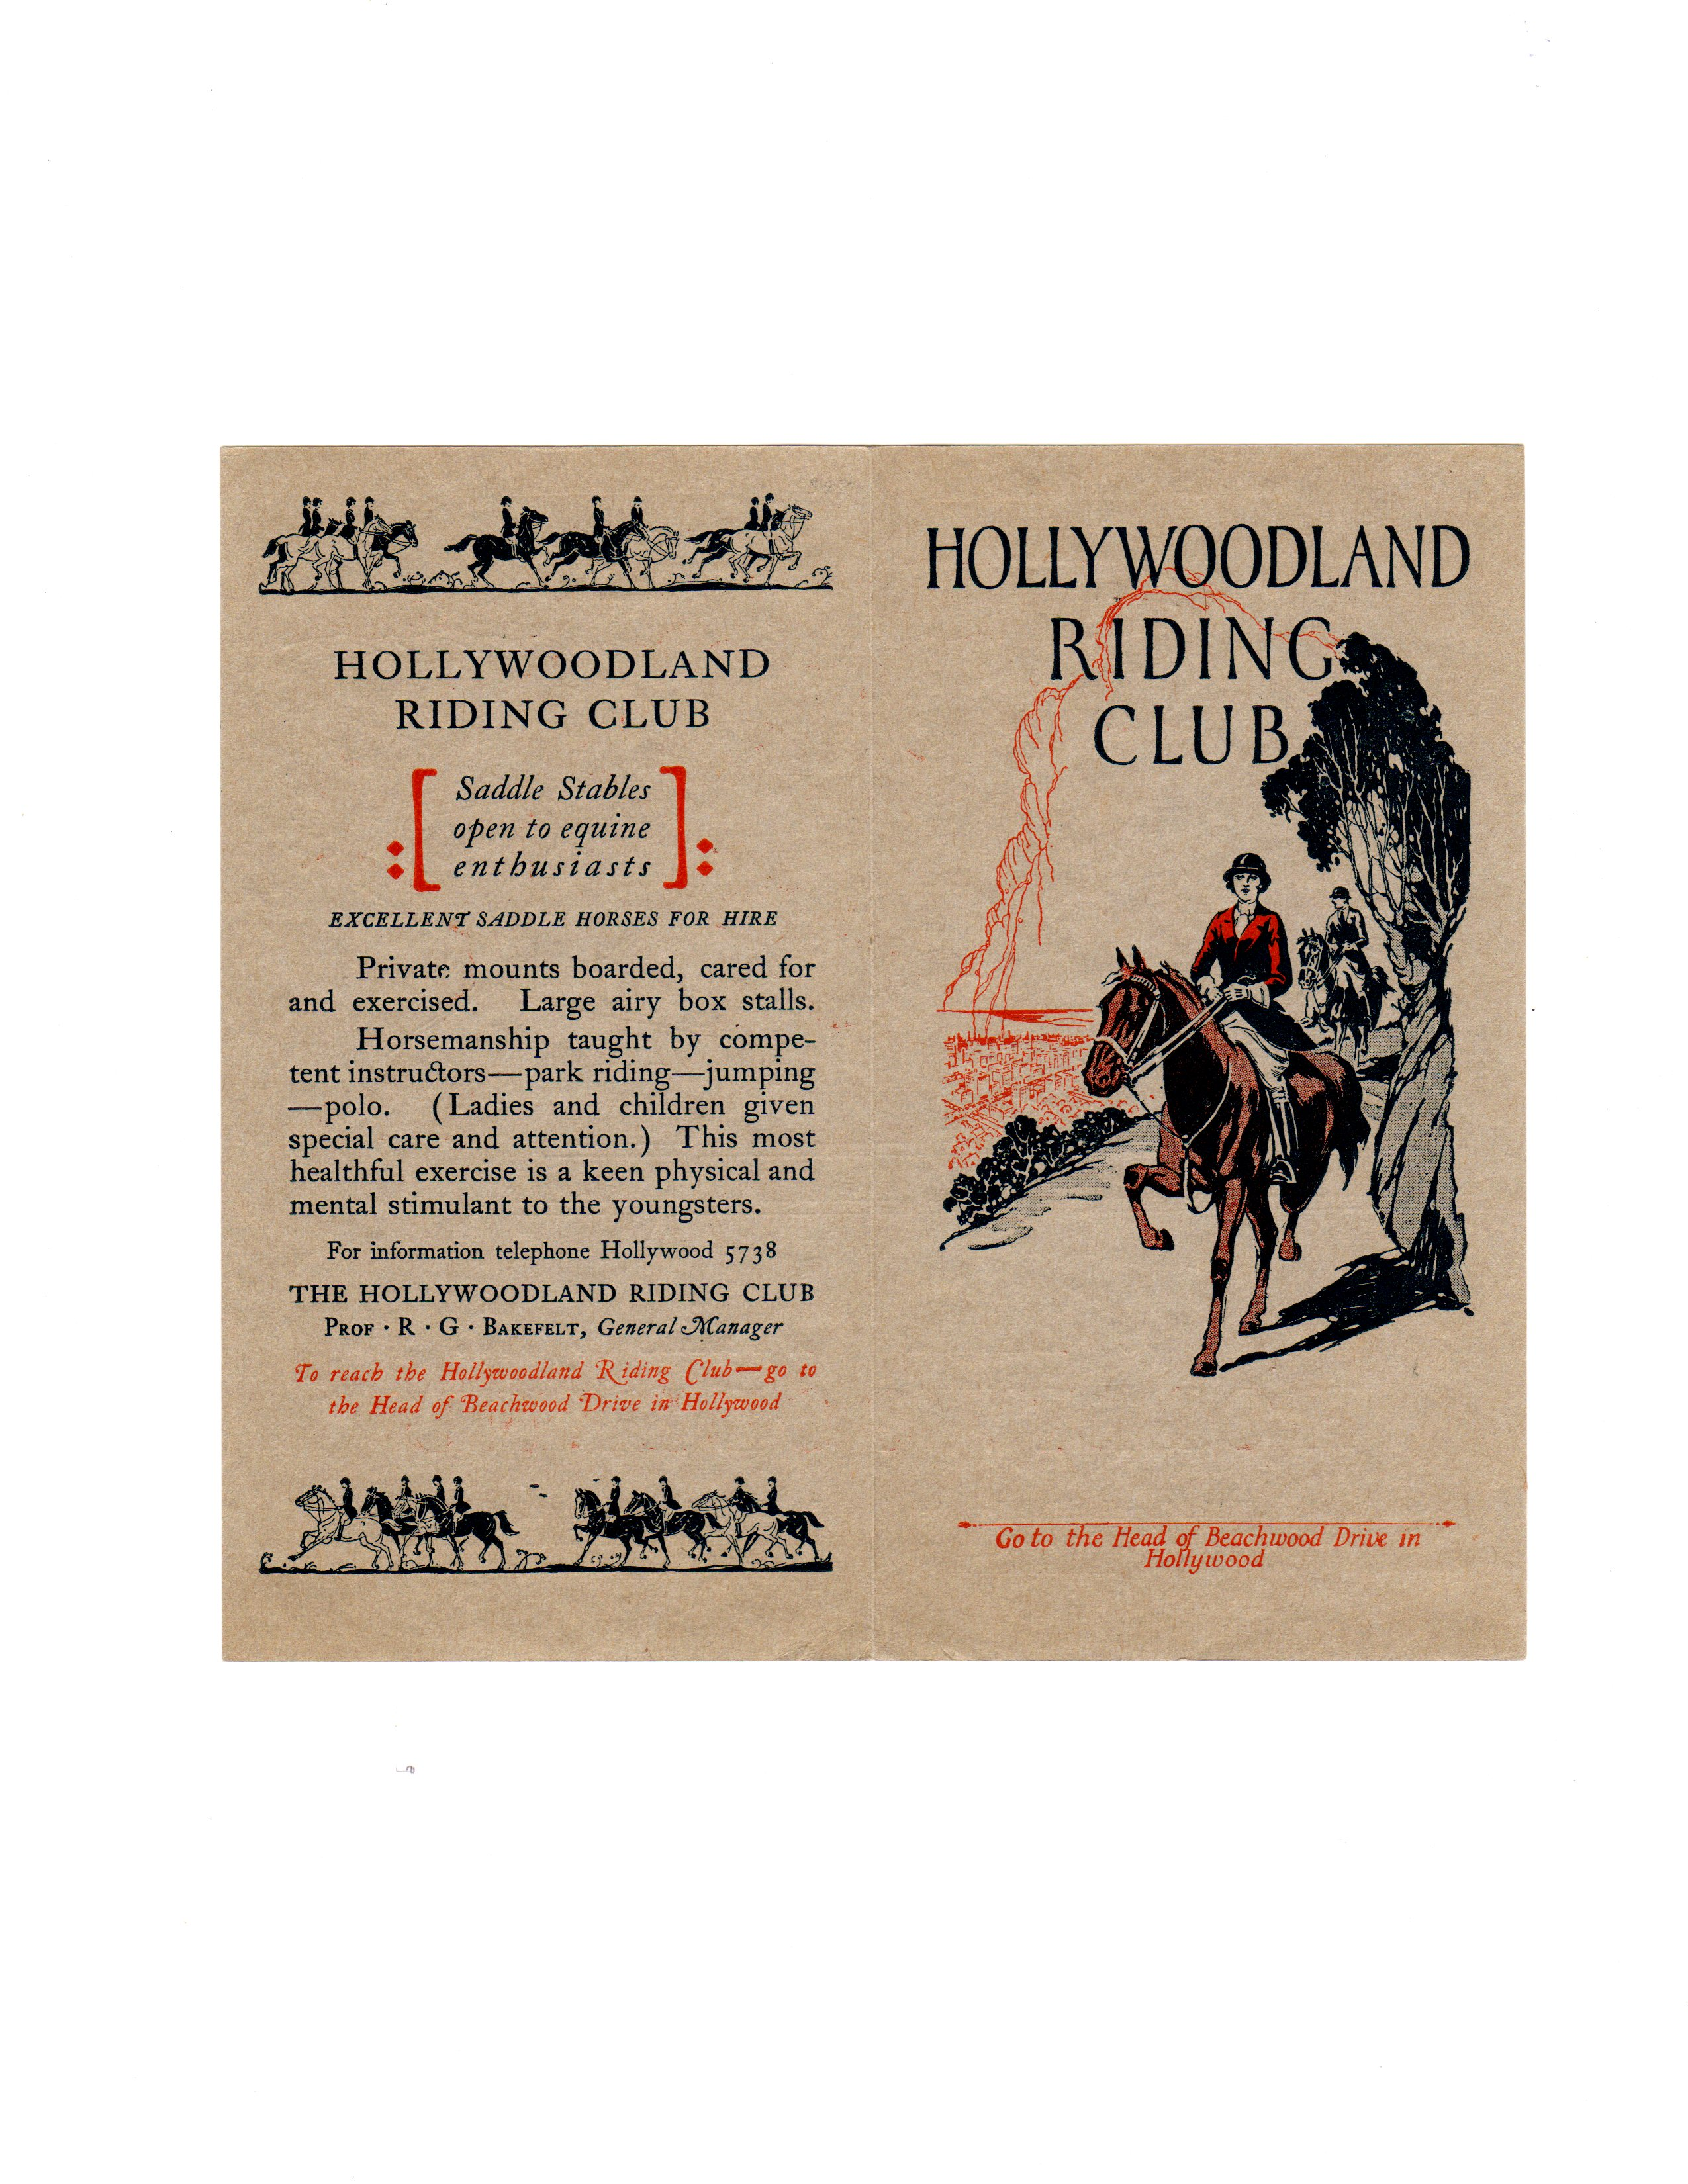 The Front and Back Covers of a Hollywoodland Riding Club pamphlet, circa 1923/All Photos Hope Anderson Productions